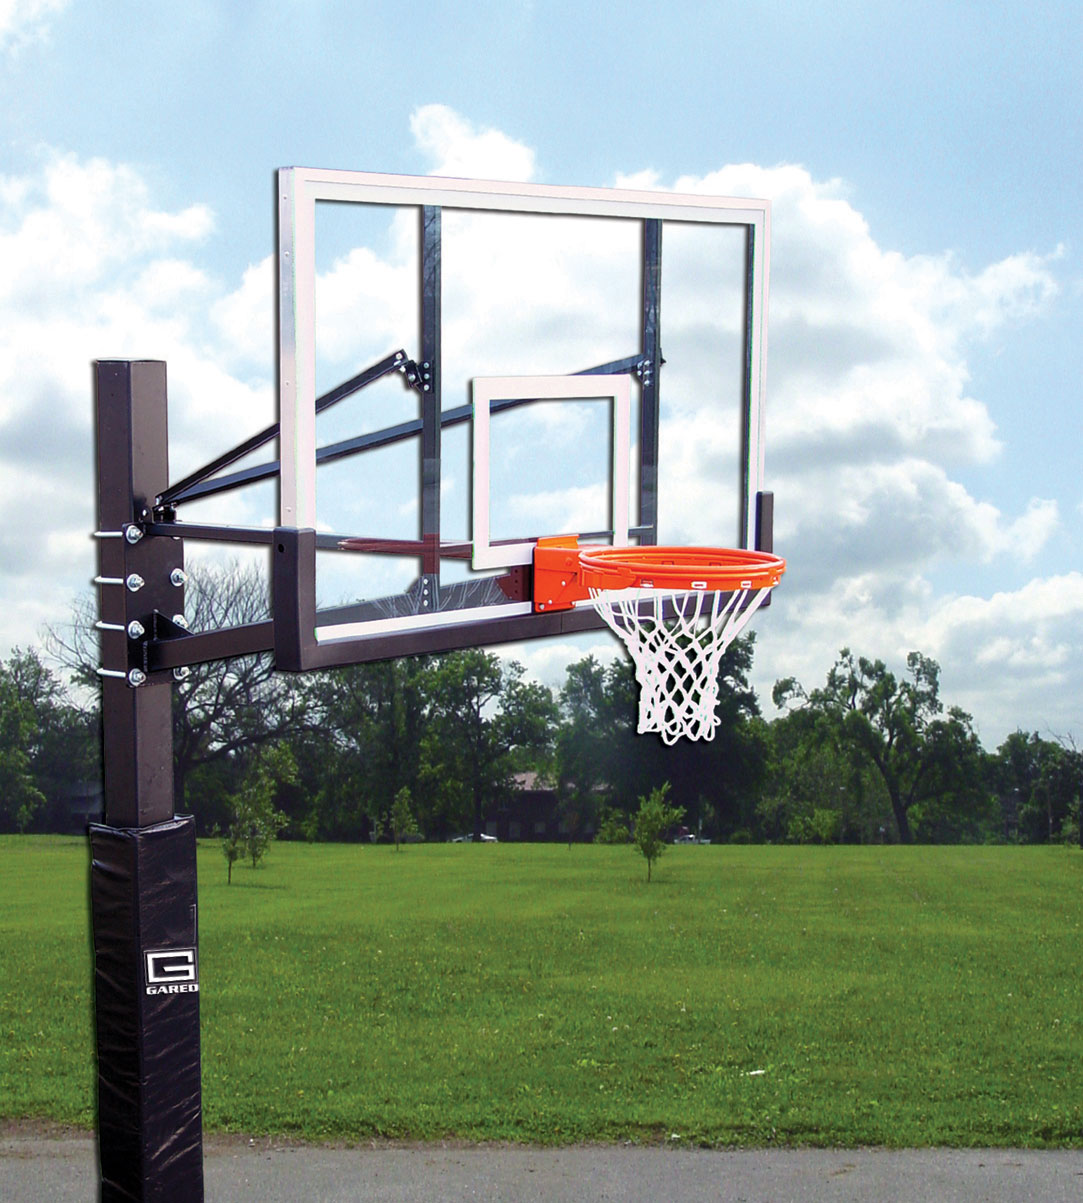 Basketball Equipment & Accessories